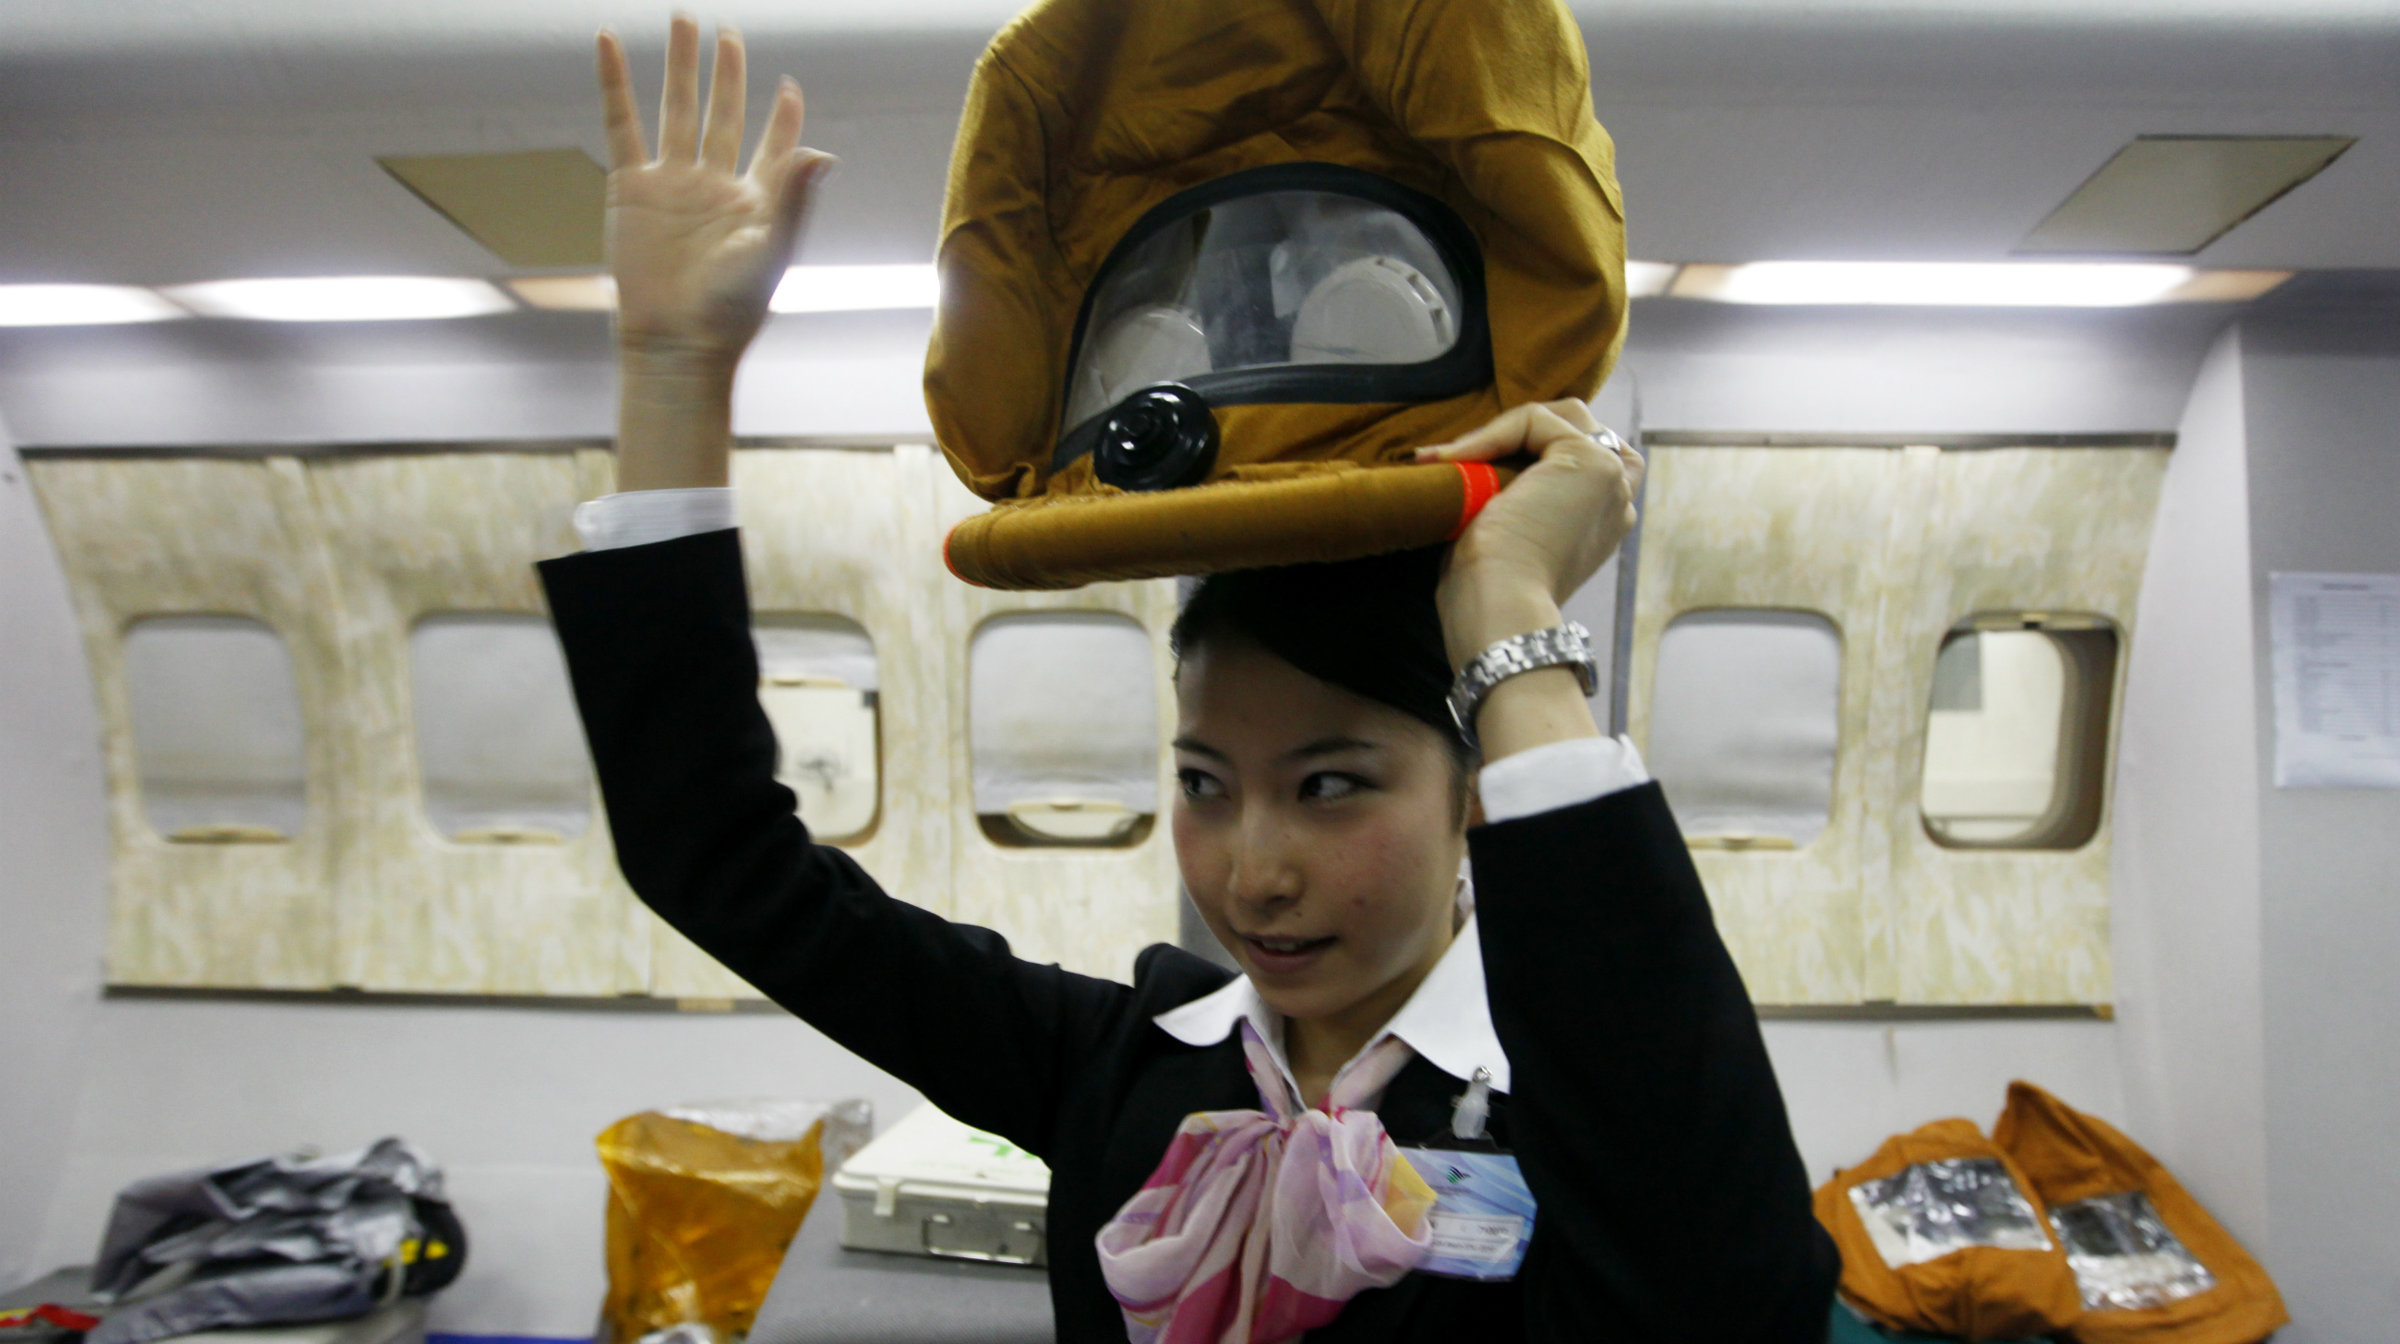 A Japanese flight attendant demonstrates head gear at a training site.